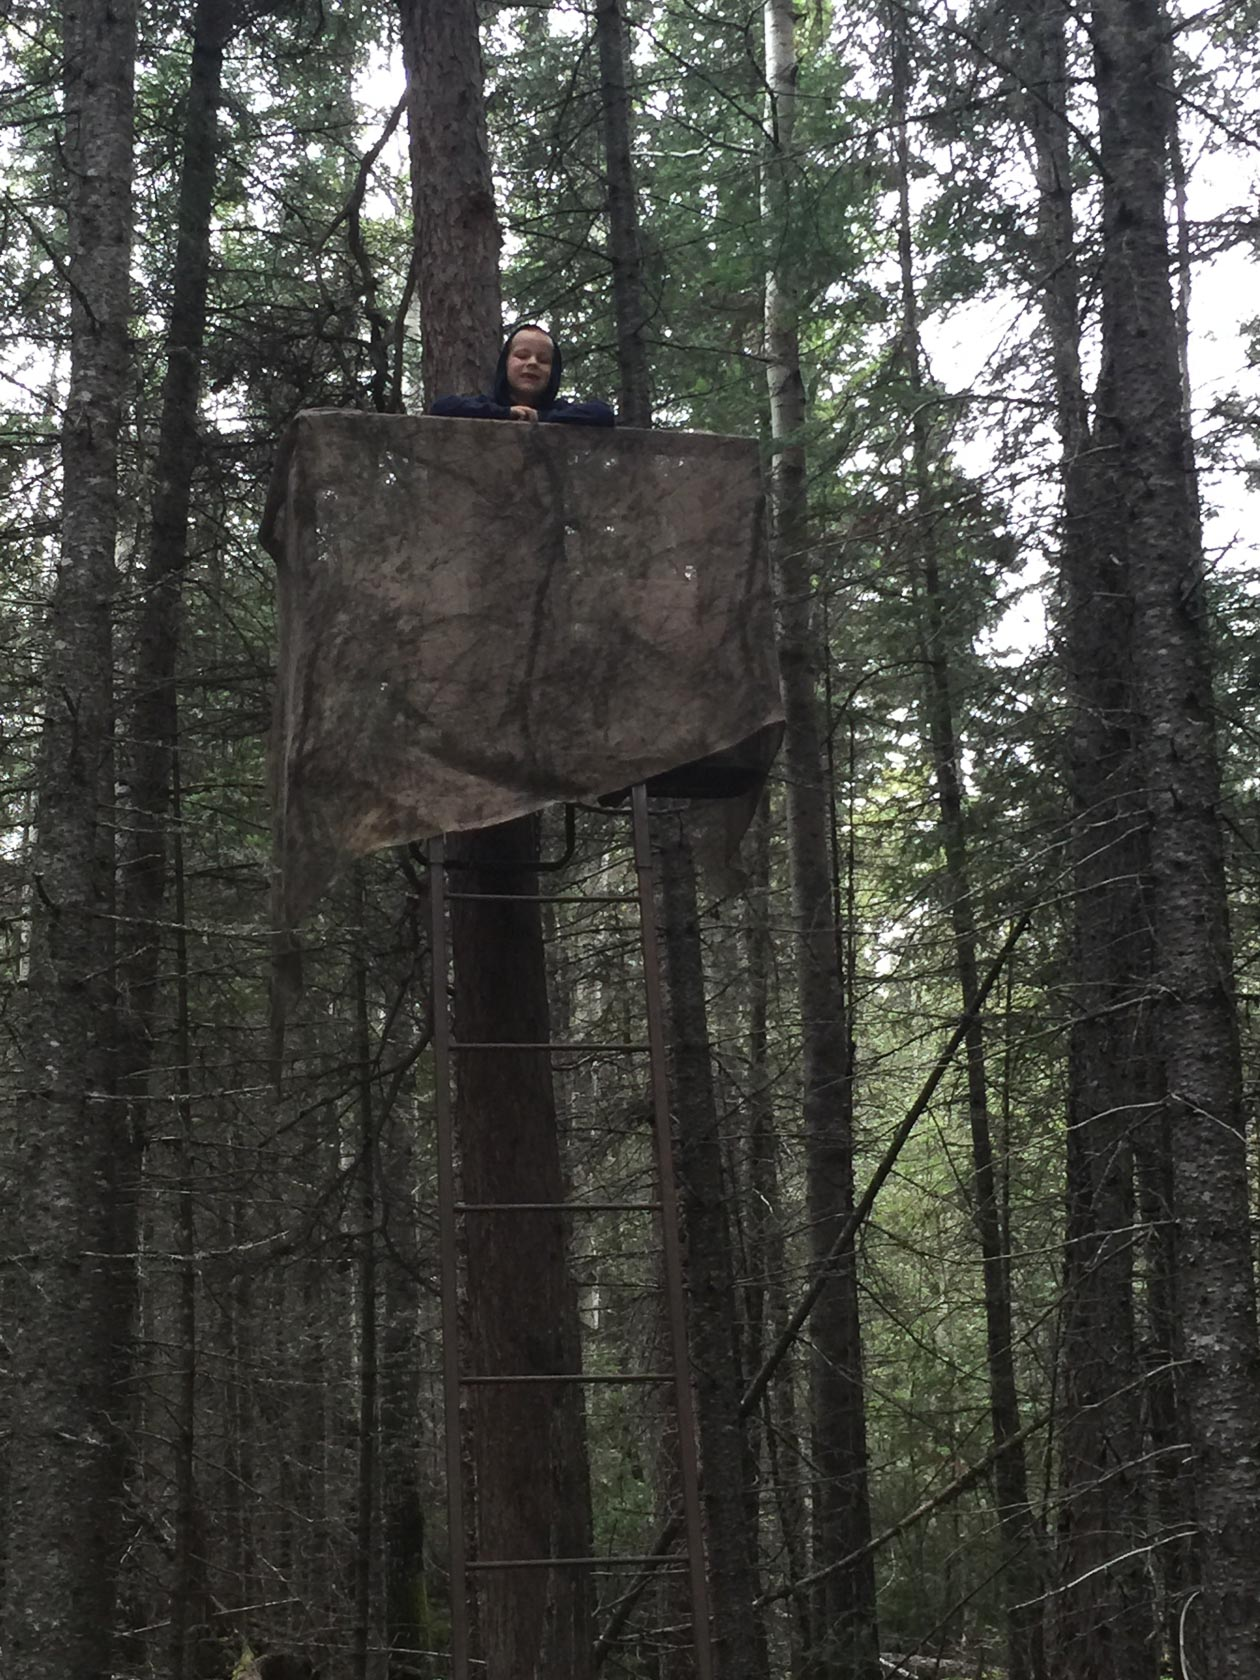 A child looks down from a ladder-style stand in a forest.